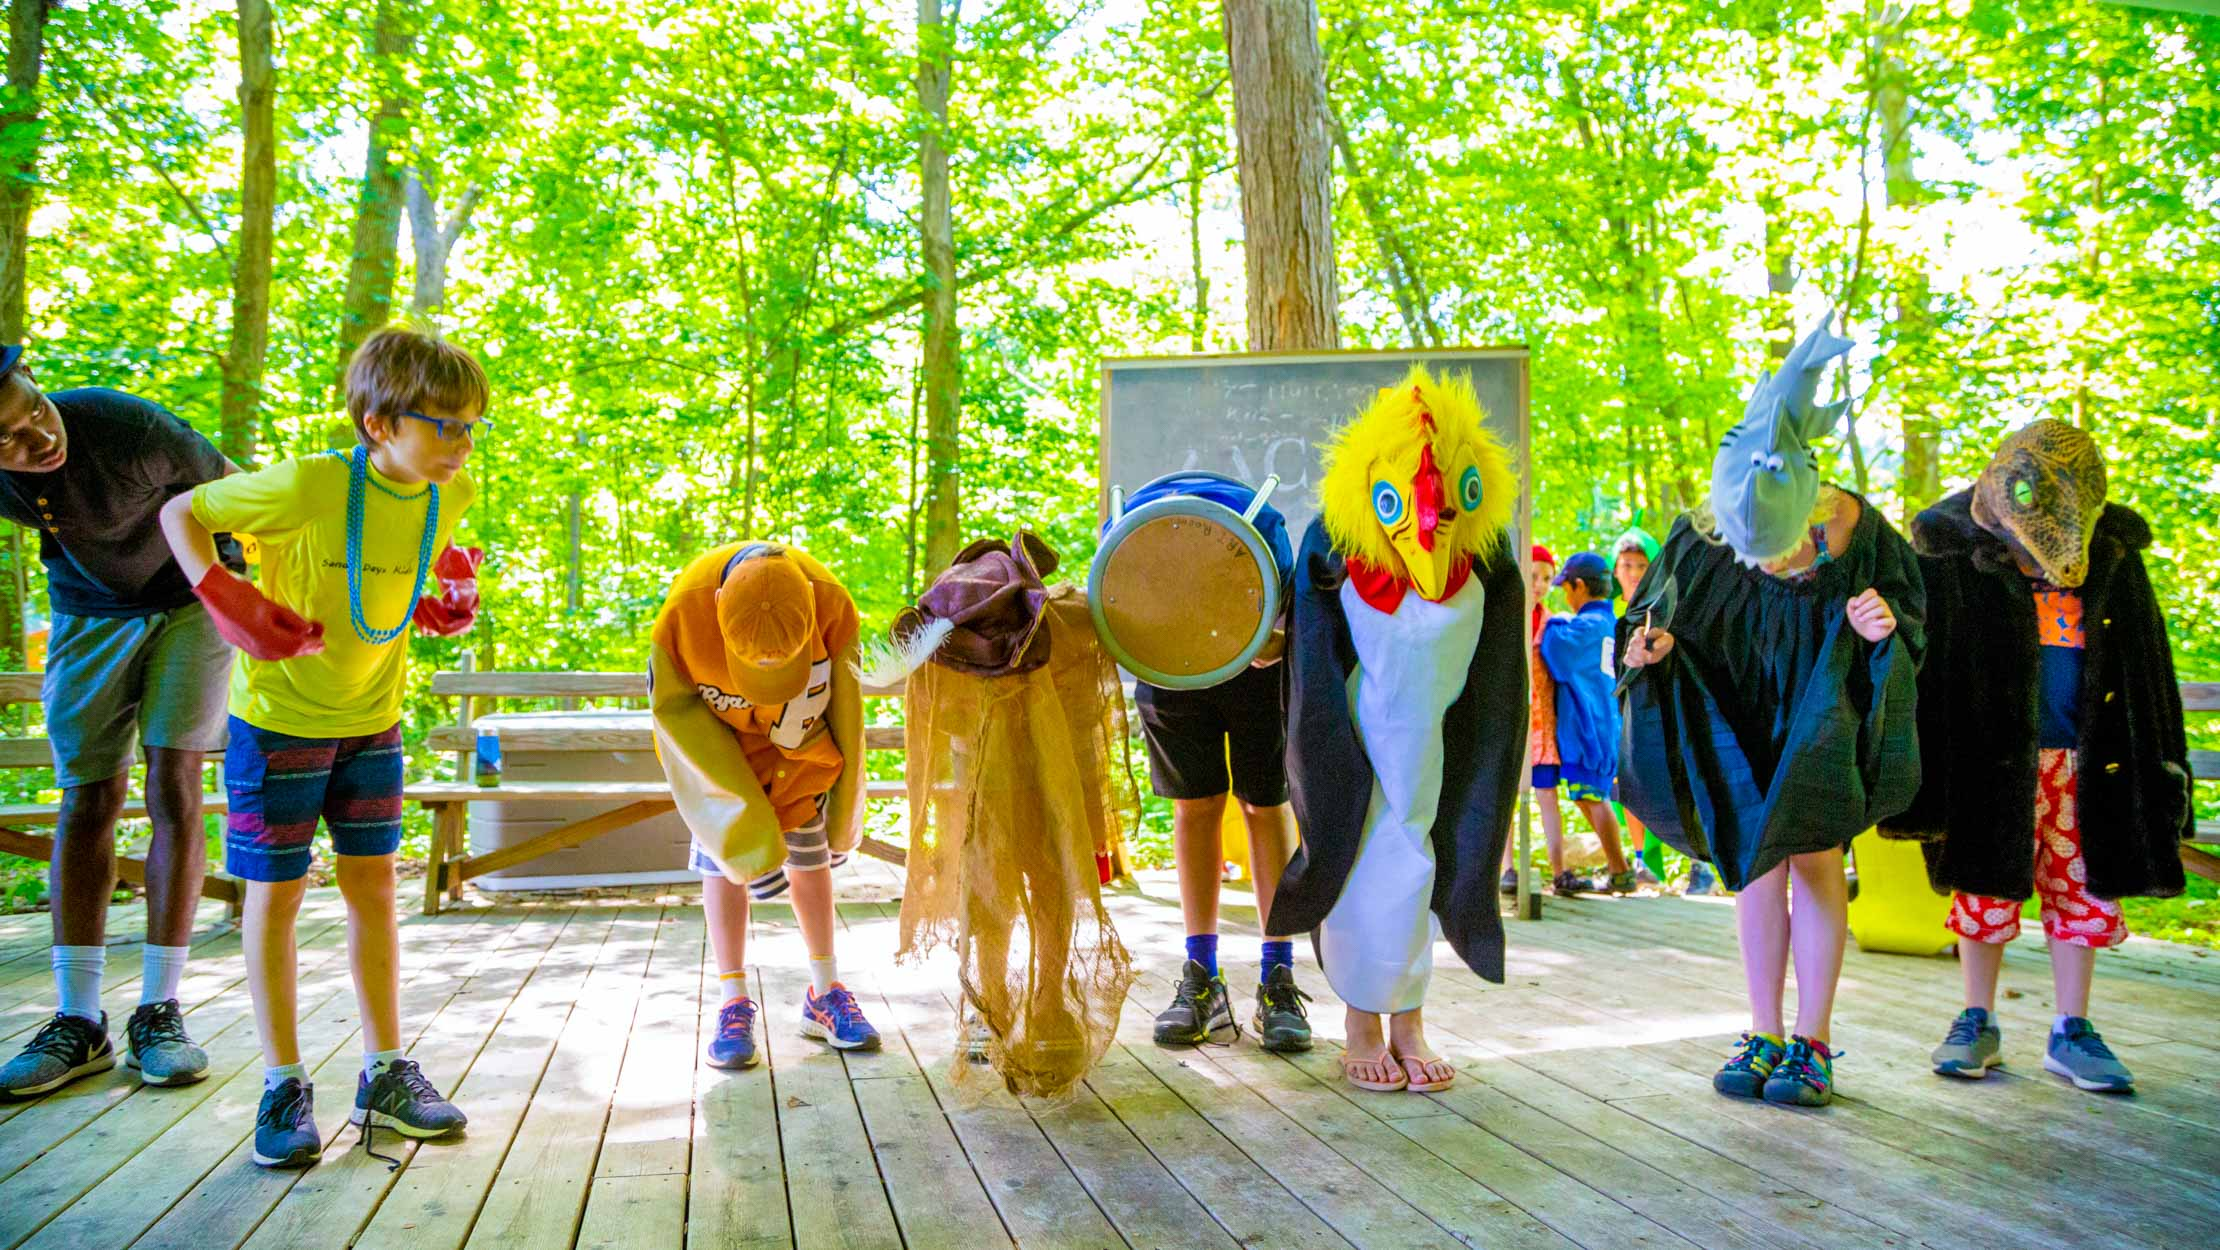 Campers in costume bowing after a skit